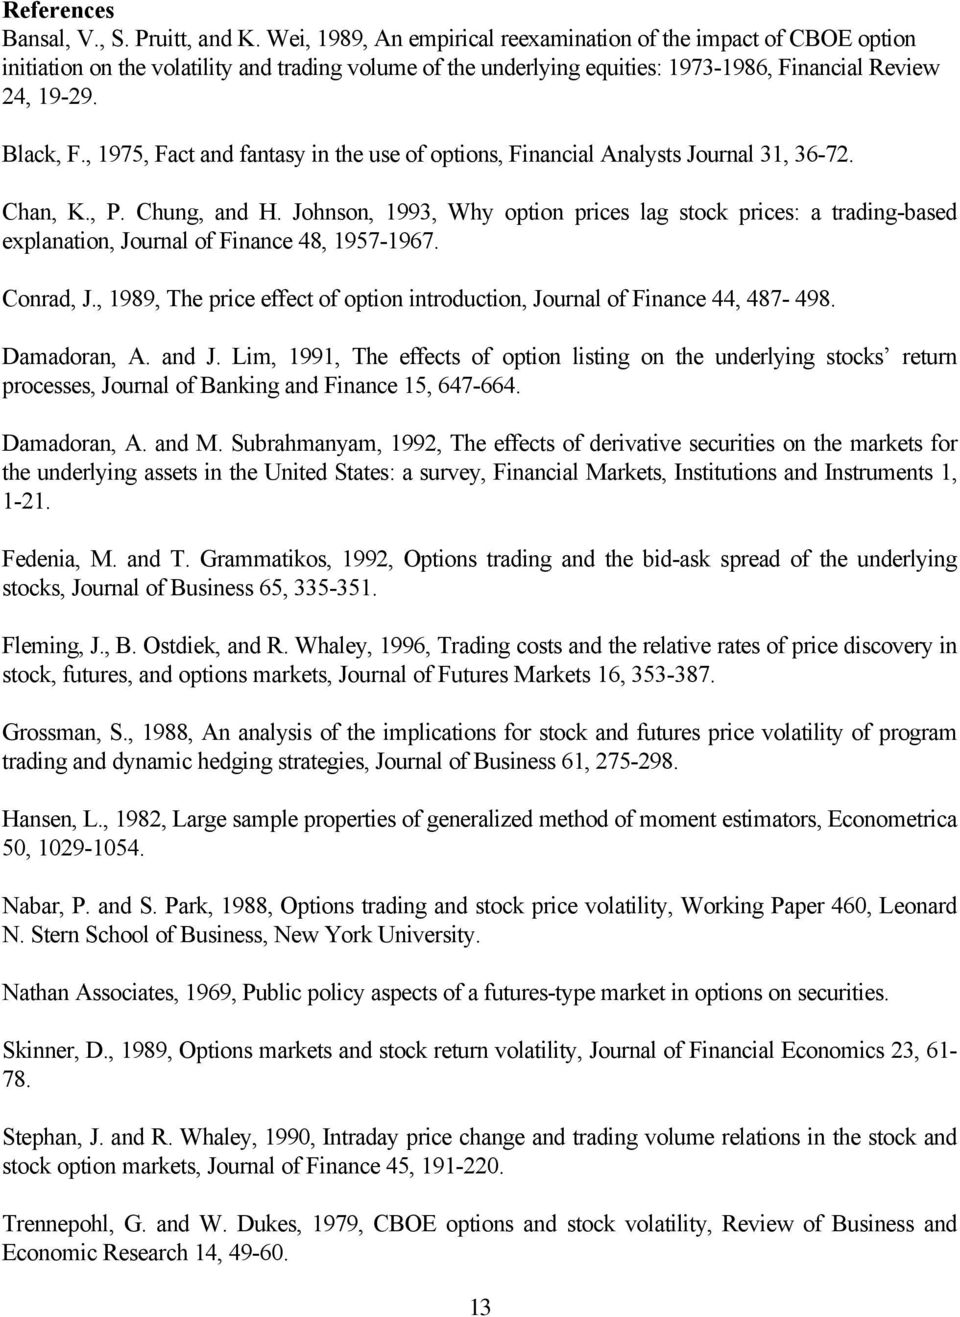 , 1975, Fac and fanasy in he use of opions, Financial Analyss Journal 31, 36-72. Chan, K., P. Chung, and H.